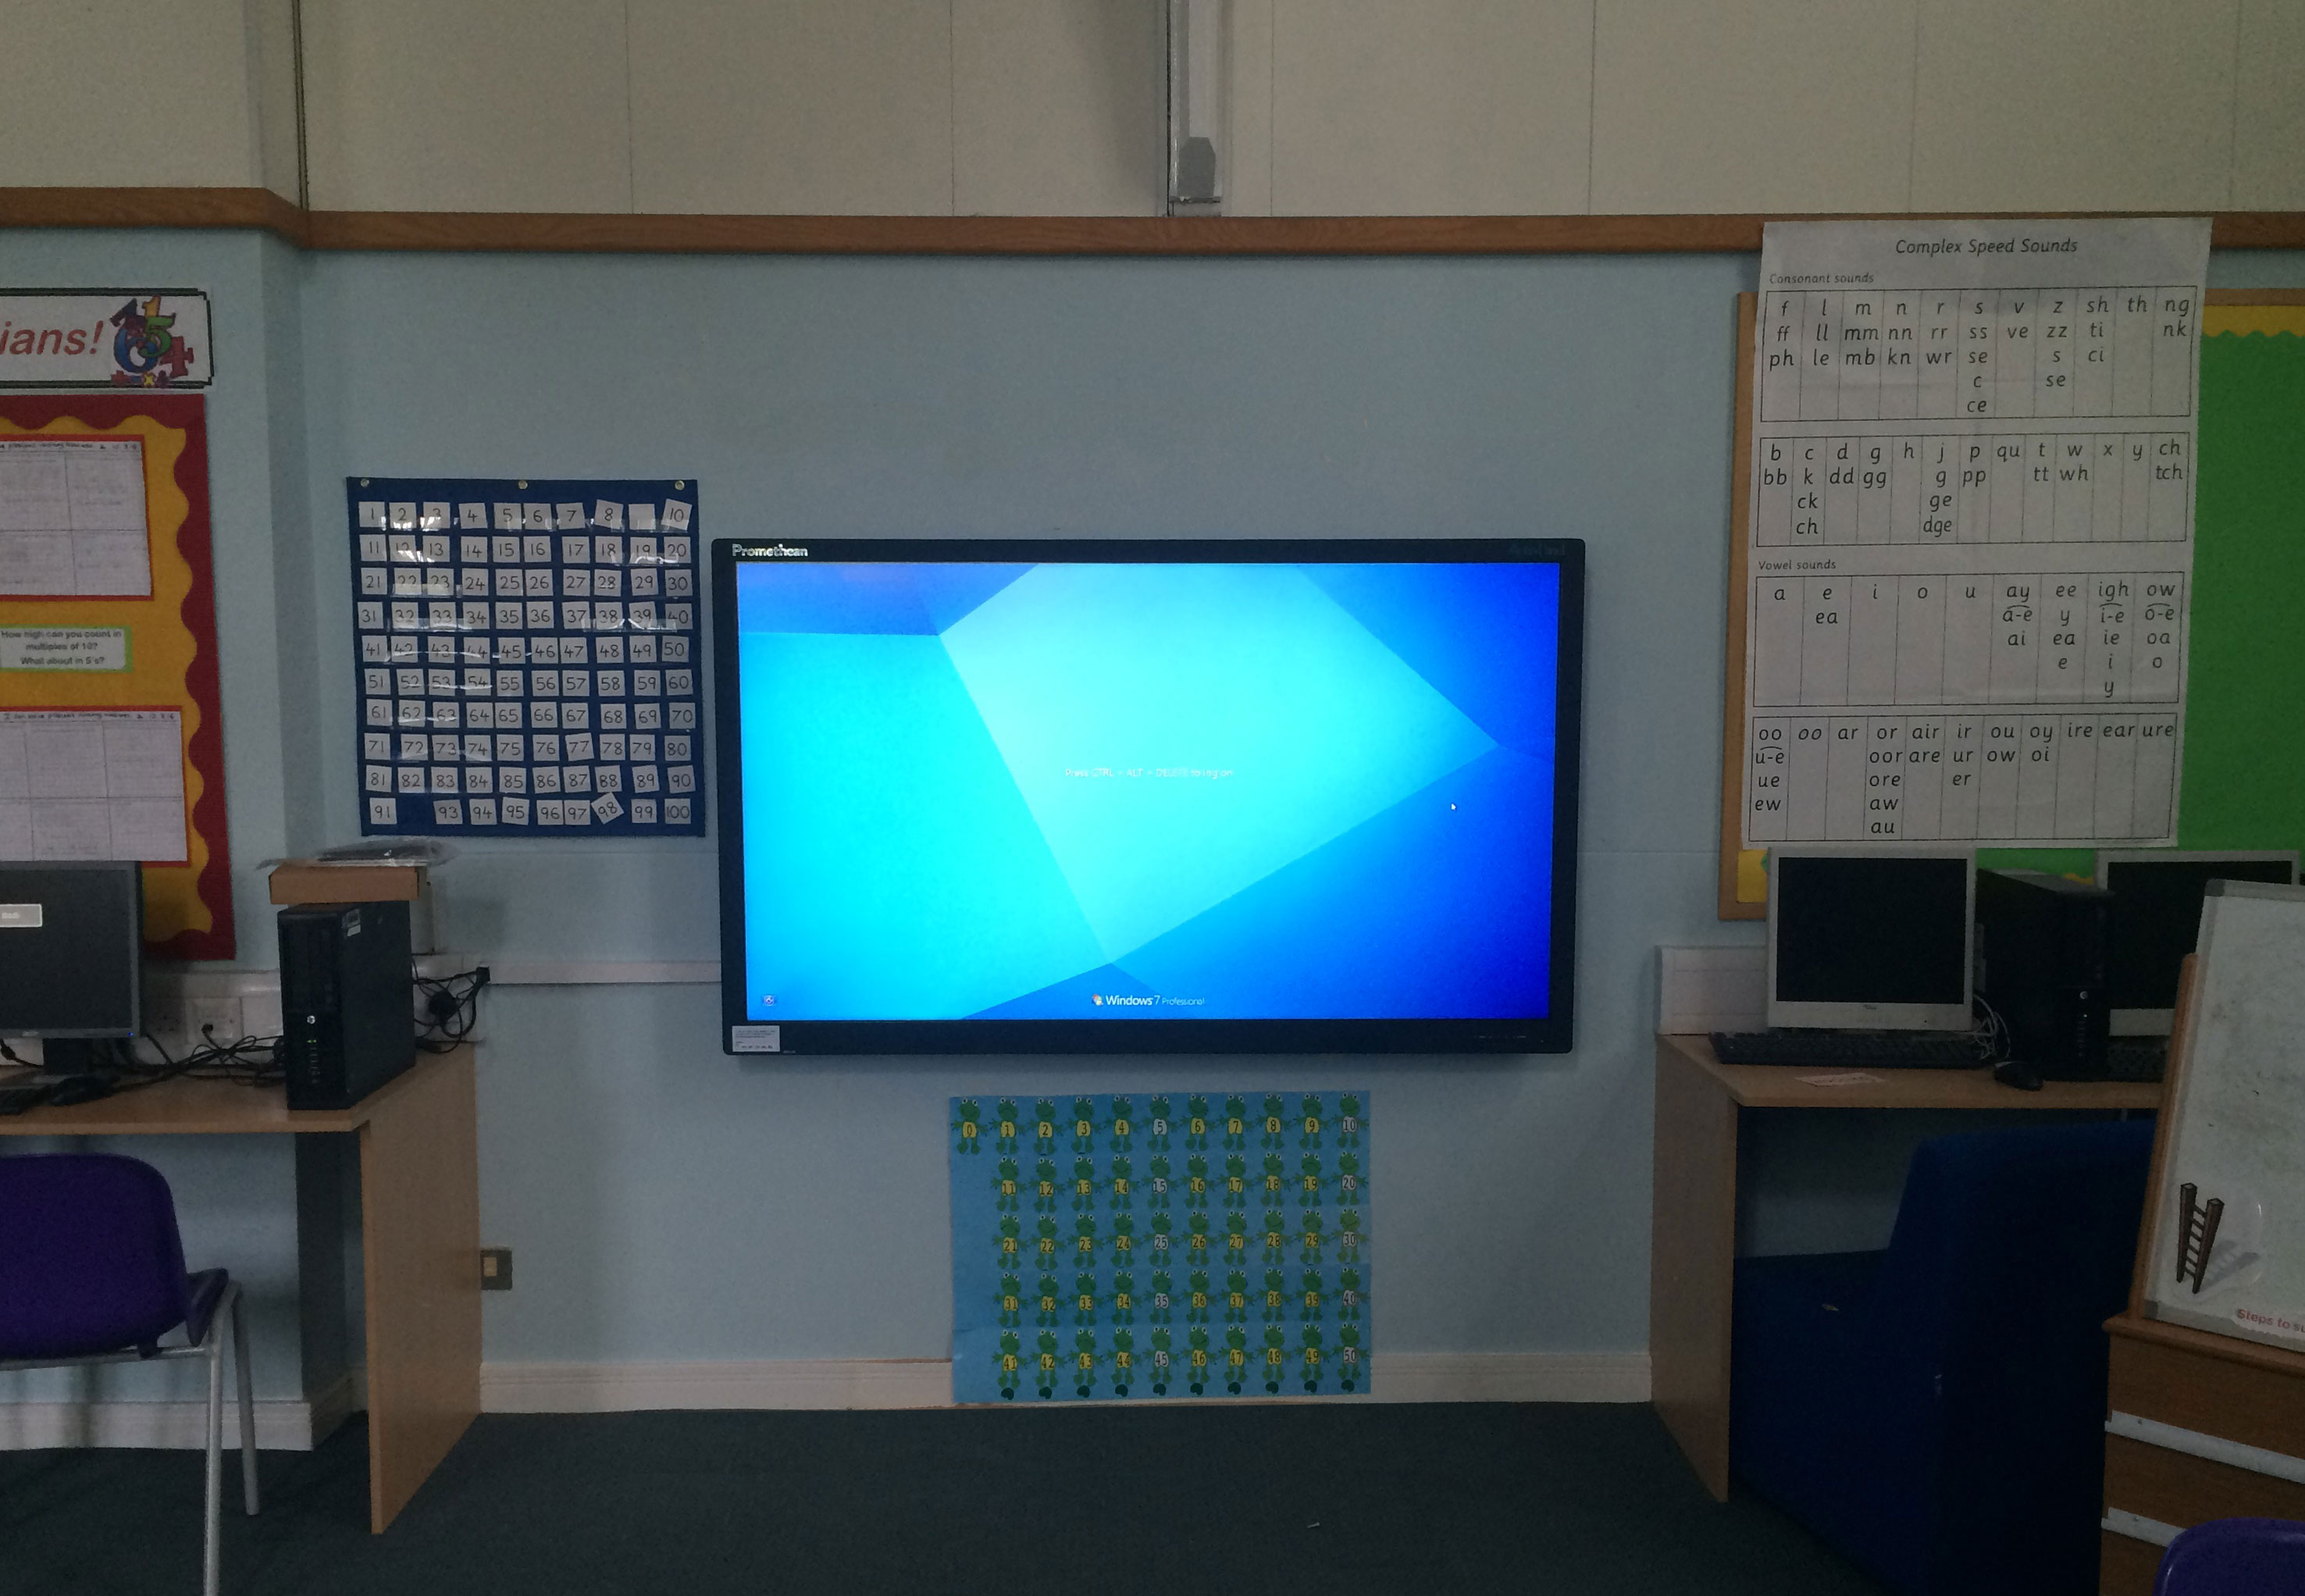 Promethean Interactive Display Installation